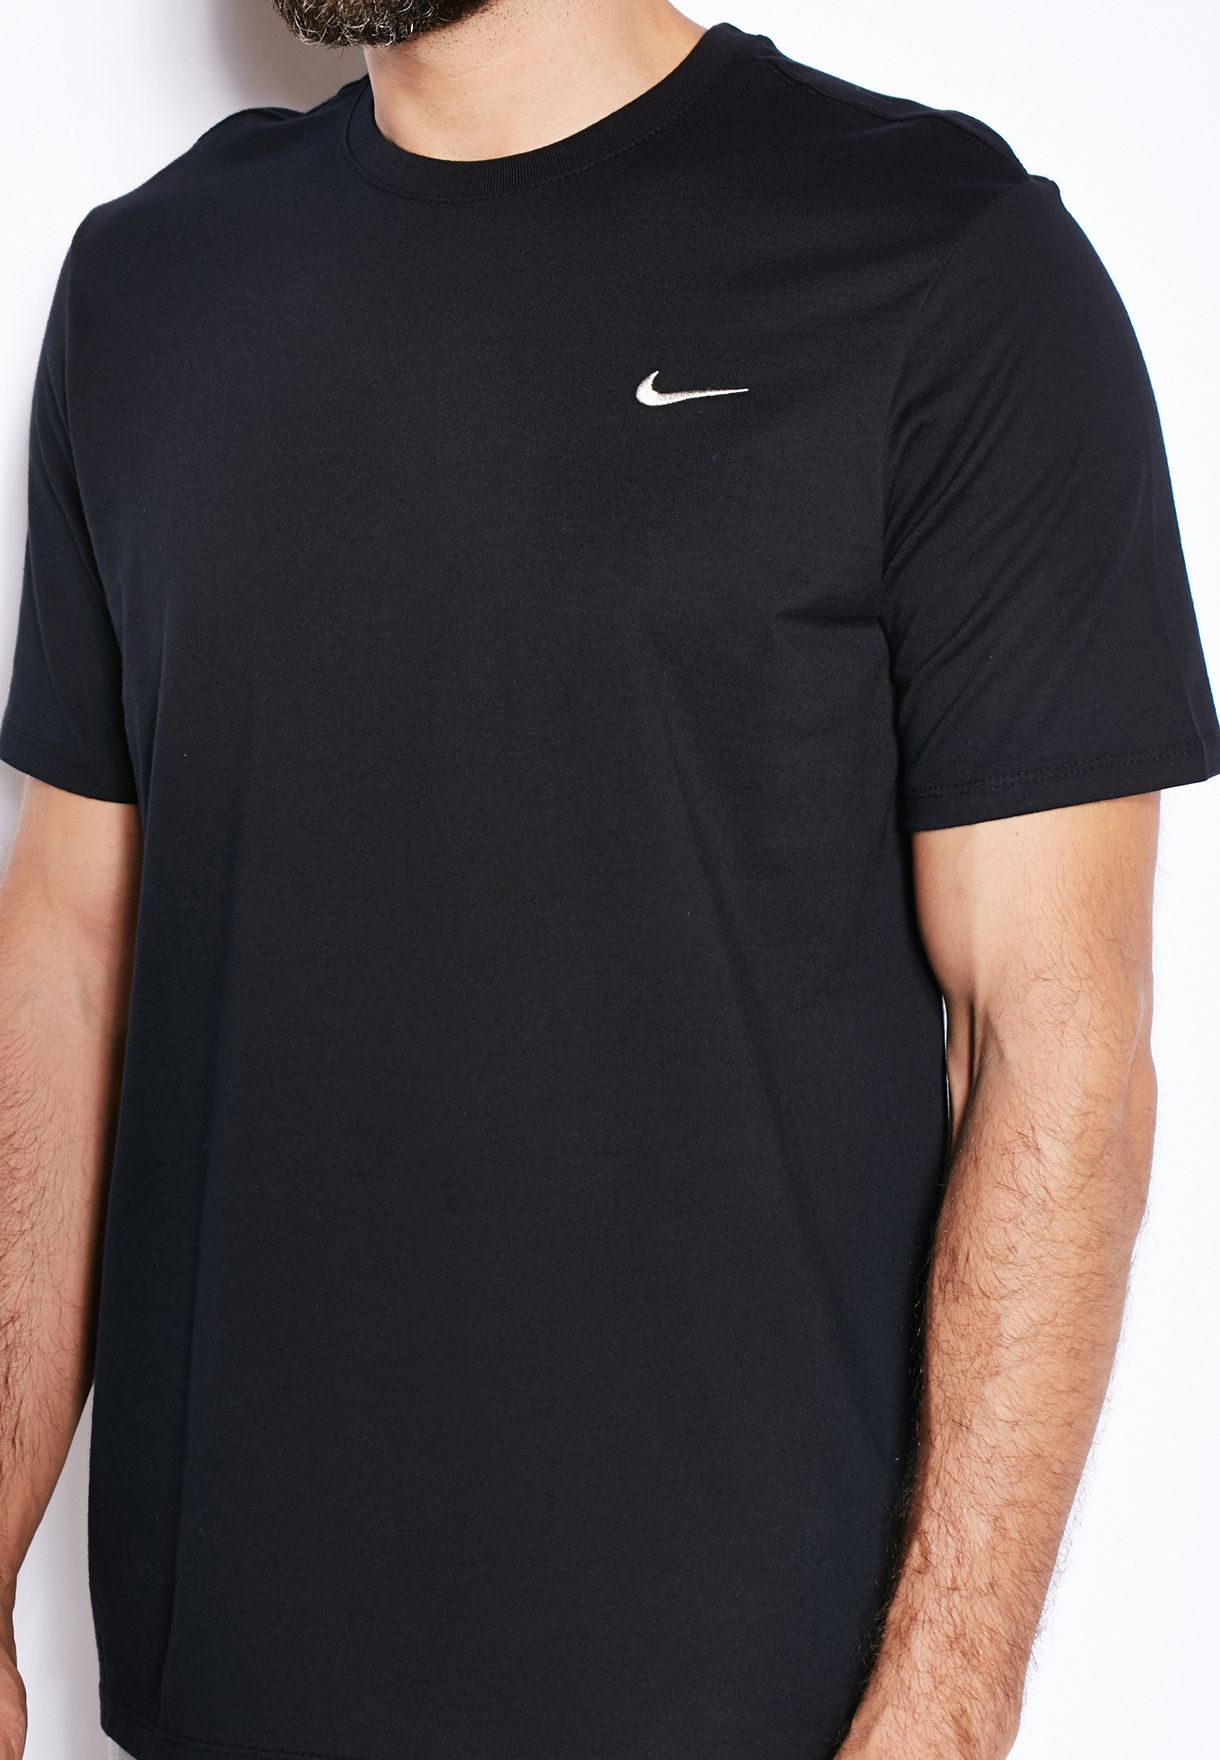 e669ff26 Shop Nike black Embroidery Swoosh T-Shirt 707350-013 for Men in UAE ...